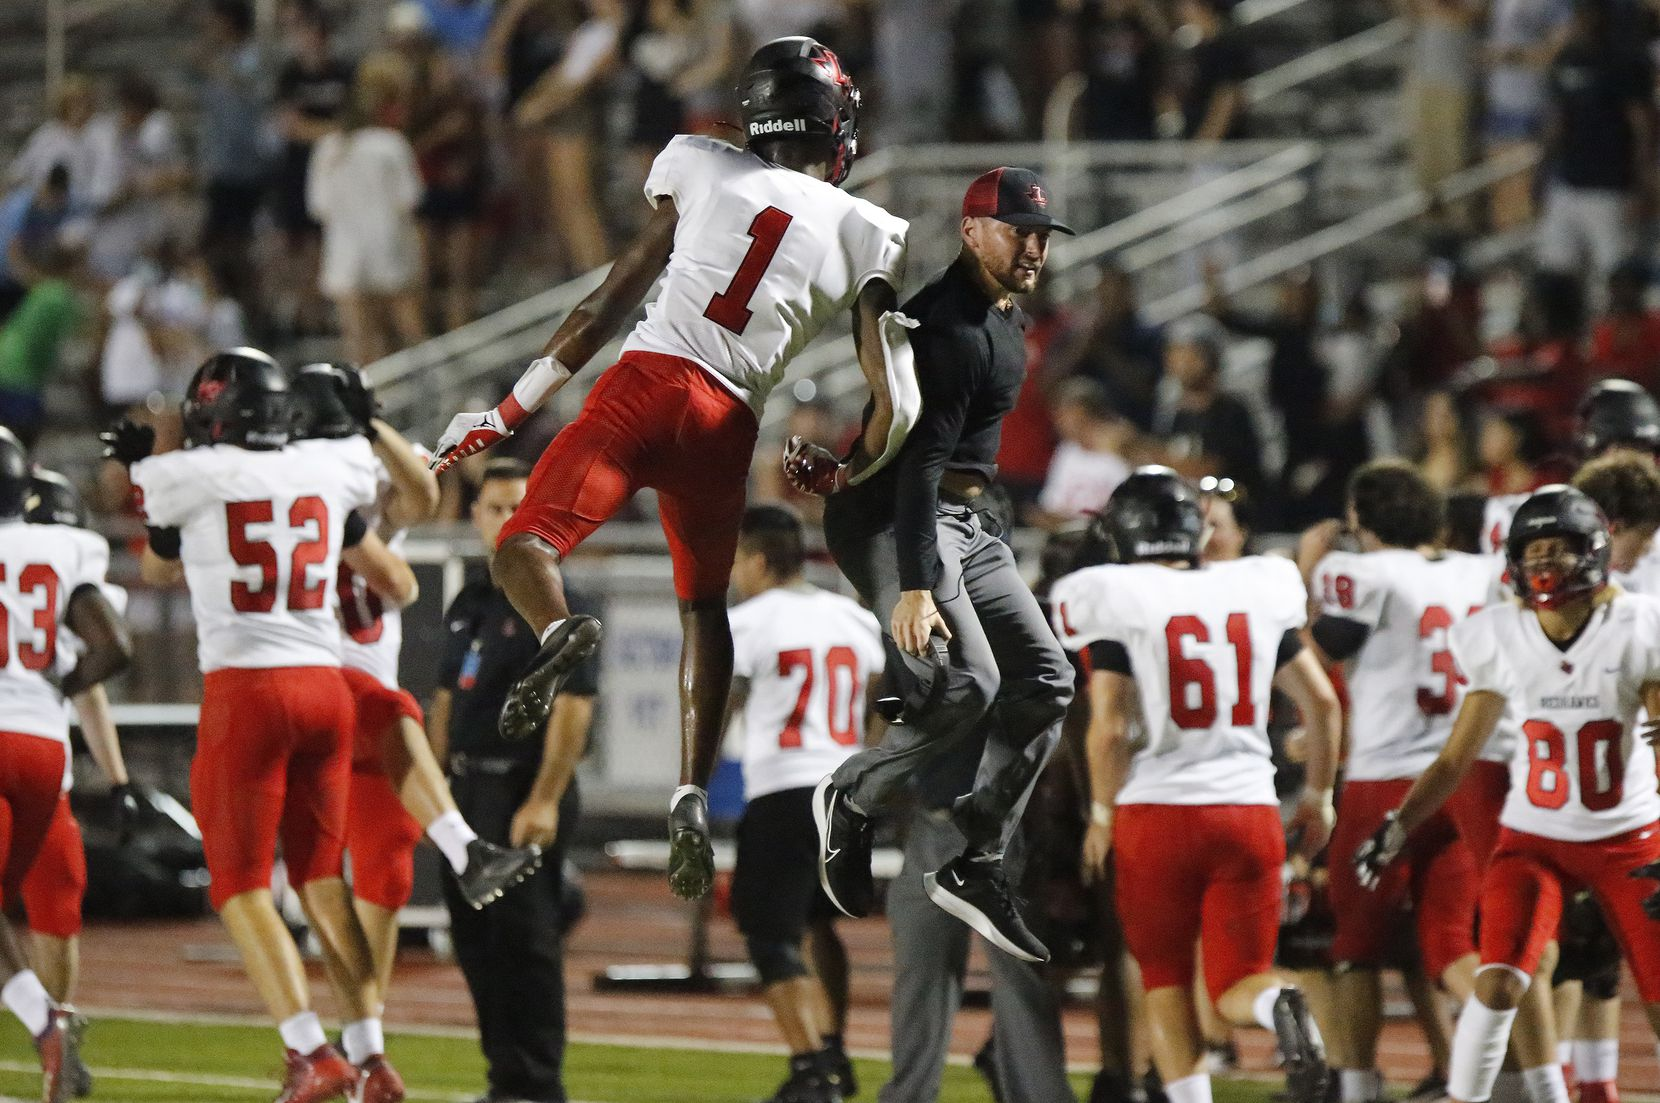 Liberty High School wide receiver Kamryn Smith (1) leaps to congratulate a coach after Liberty made a two point conversion to take a 50-49 lead with 8 seconds left during the second half as Reedy High School hosted Frisco Liberty High School at David Kuykendall Stadium in Frisco on Wednesday night, August 26, 2021. (Stewart F. House/Special Contributor)